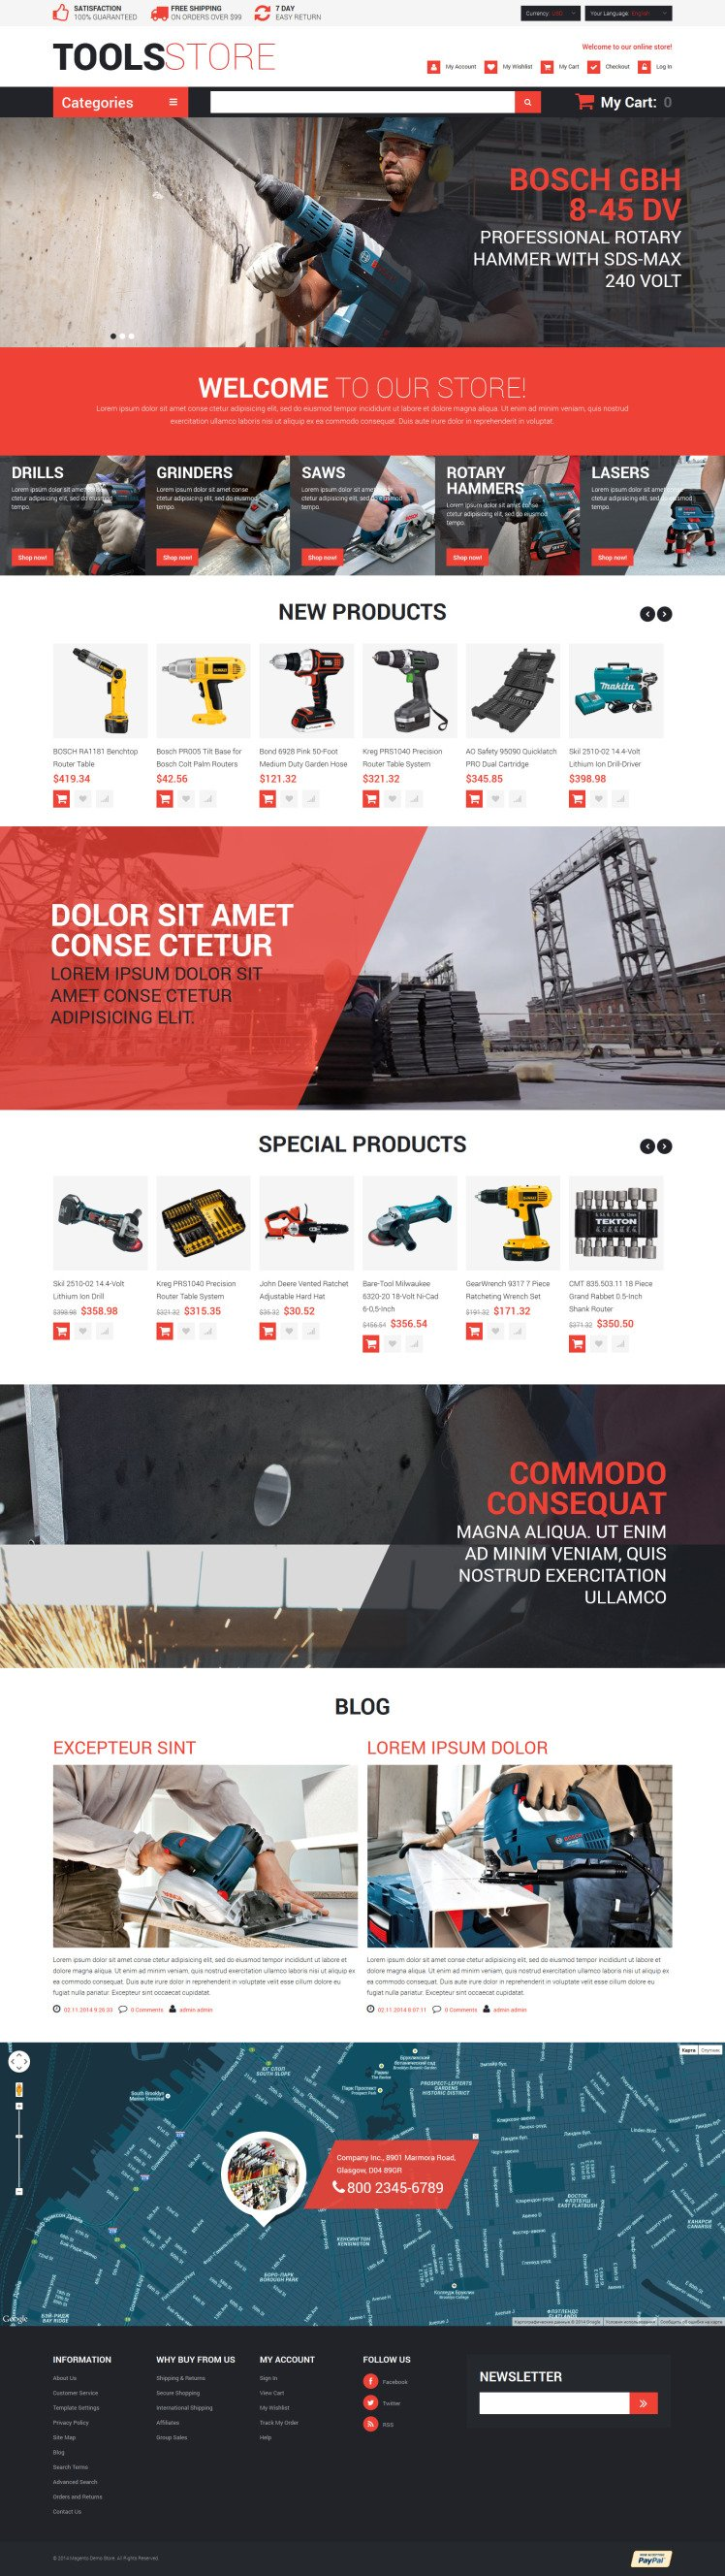 Contractor Tools Magento Themes